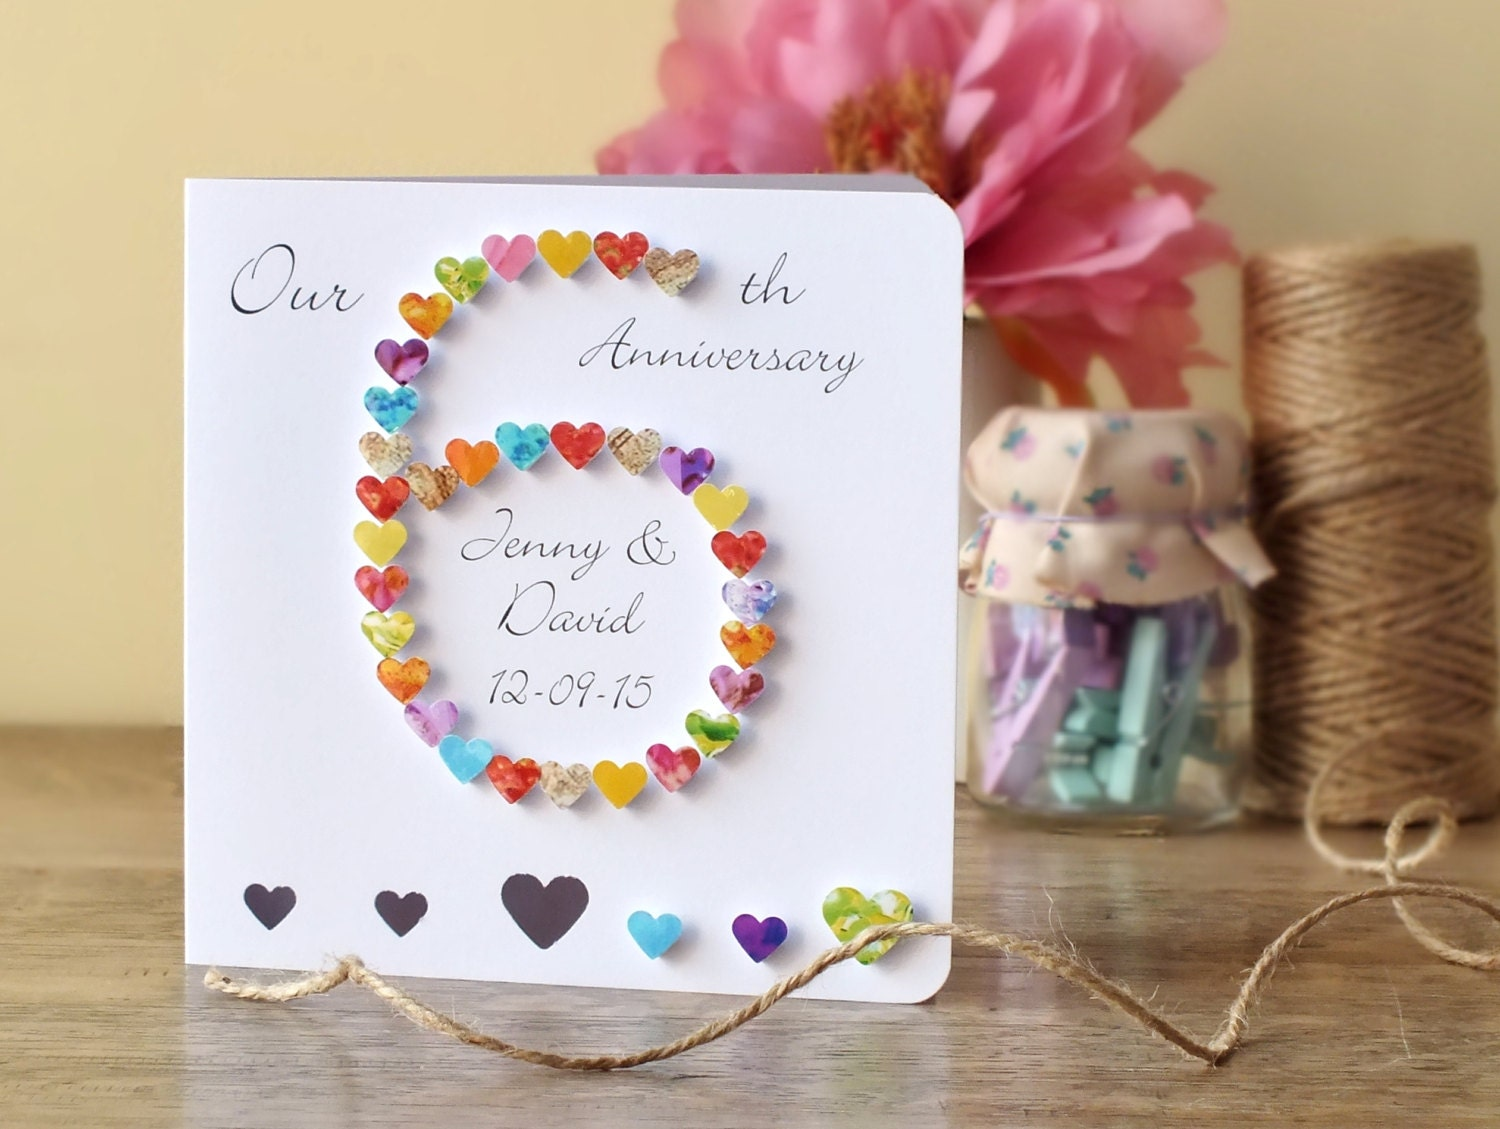 Unique 6th Wedding Anniversary Gifts For Him : Sixth Wedding Anniversary Gift Ideas For Himunjourmonbebeviendra ...